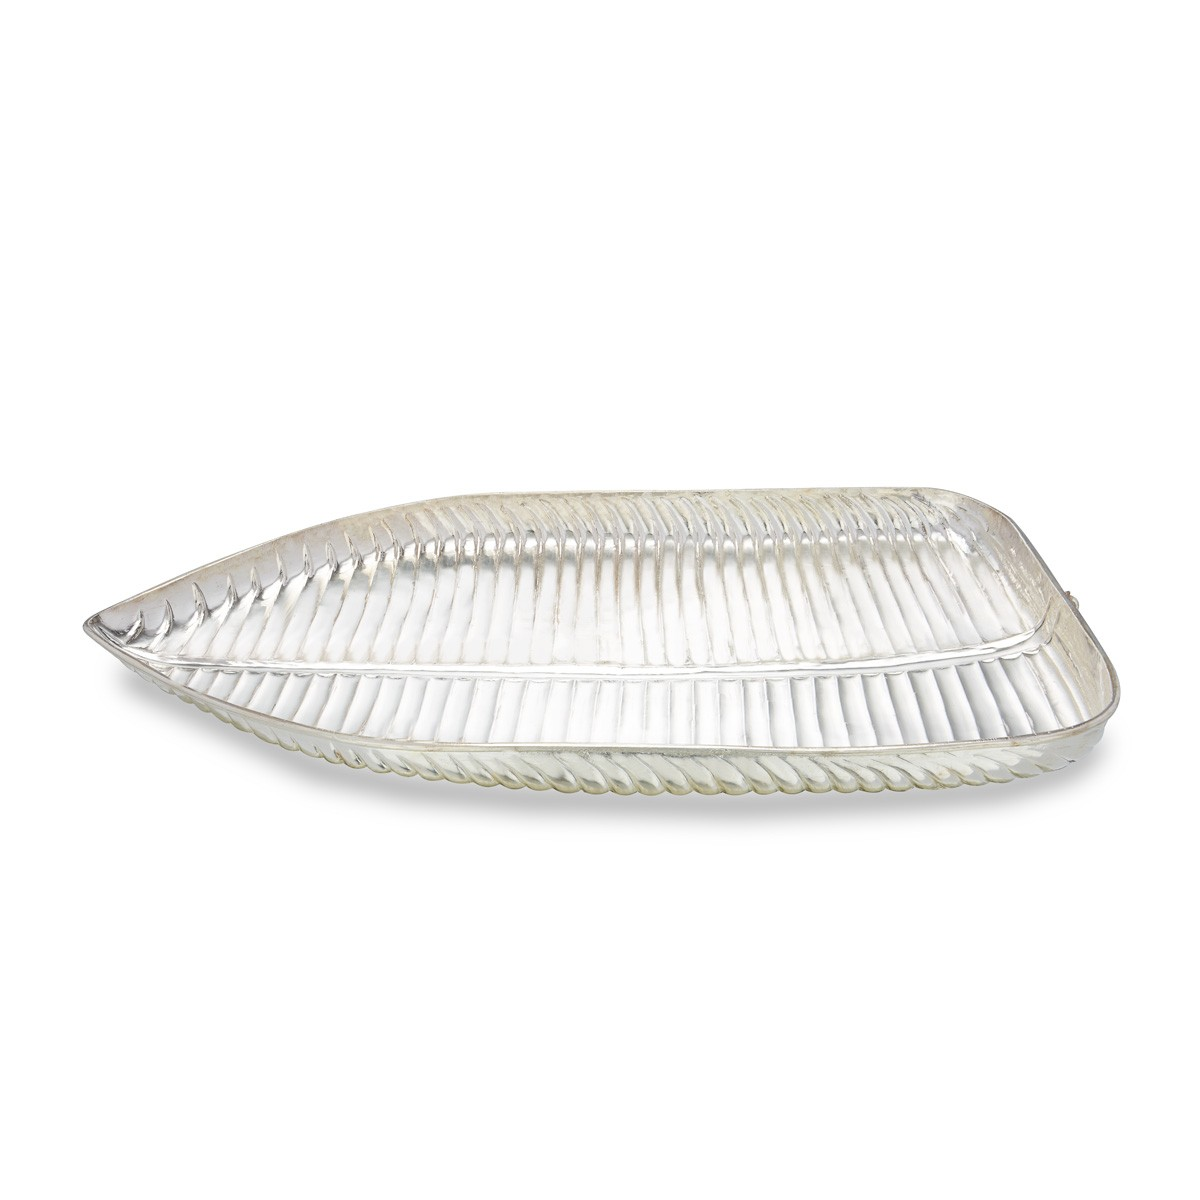 Banana Leaf Plate In Silver - Silver dinner sets u0026 plates - Silver Articles  sc 1 st  SVTM Jewels & Banana Leaf Plate In Silver - Silver dinner sets u0026 plates - Silver ...